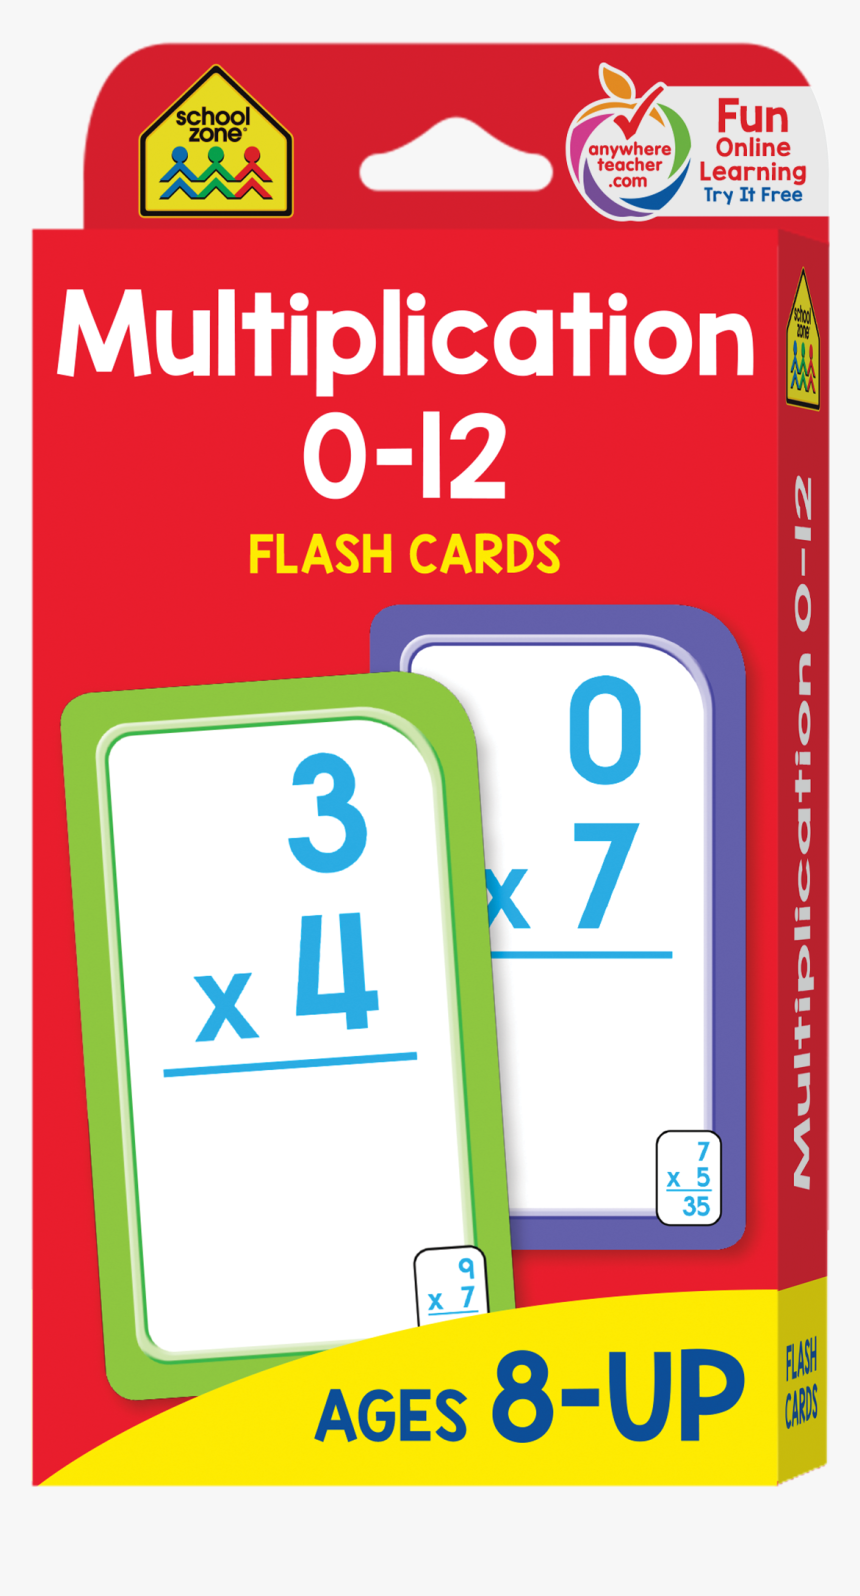 Multiplication 0-12 Flash Cards Will Make Math More